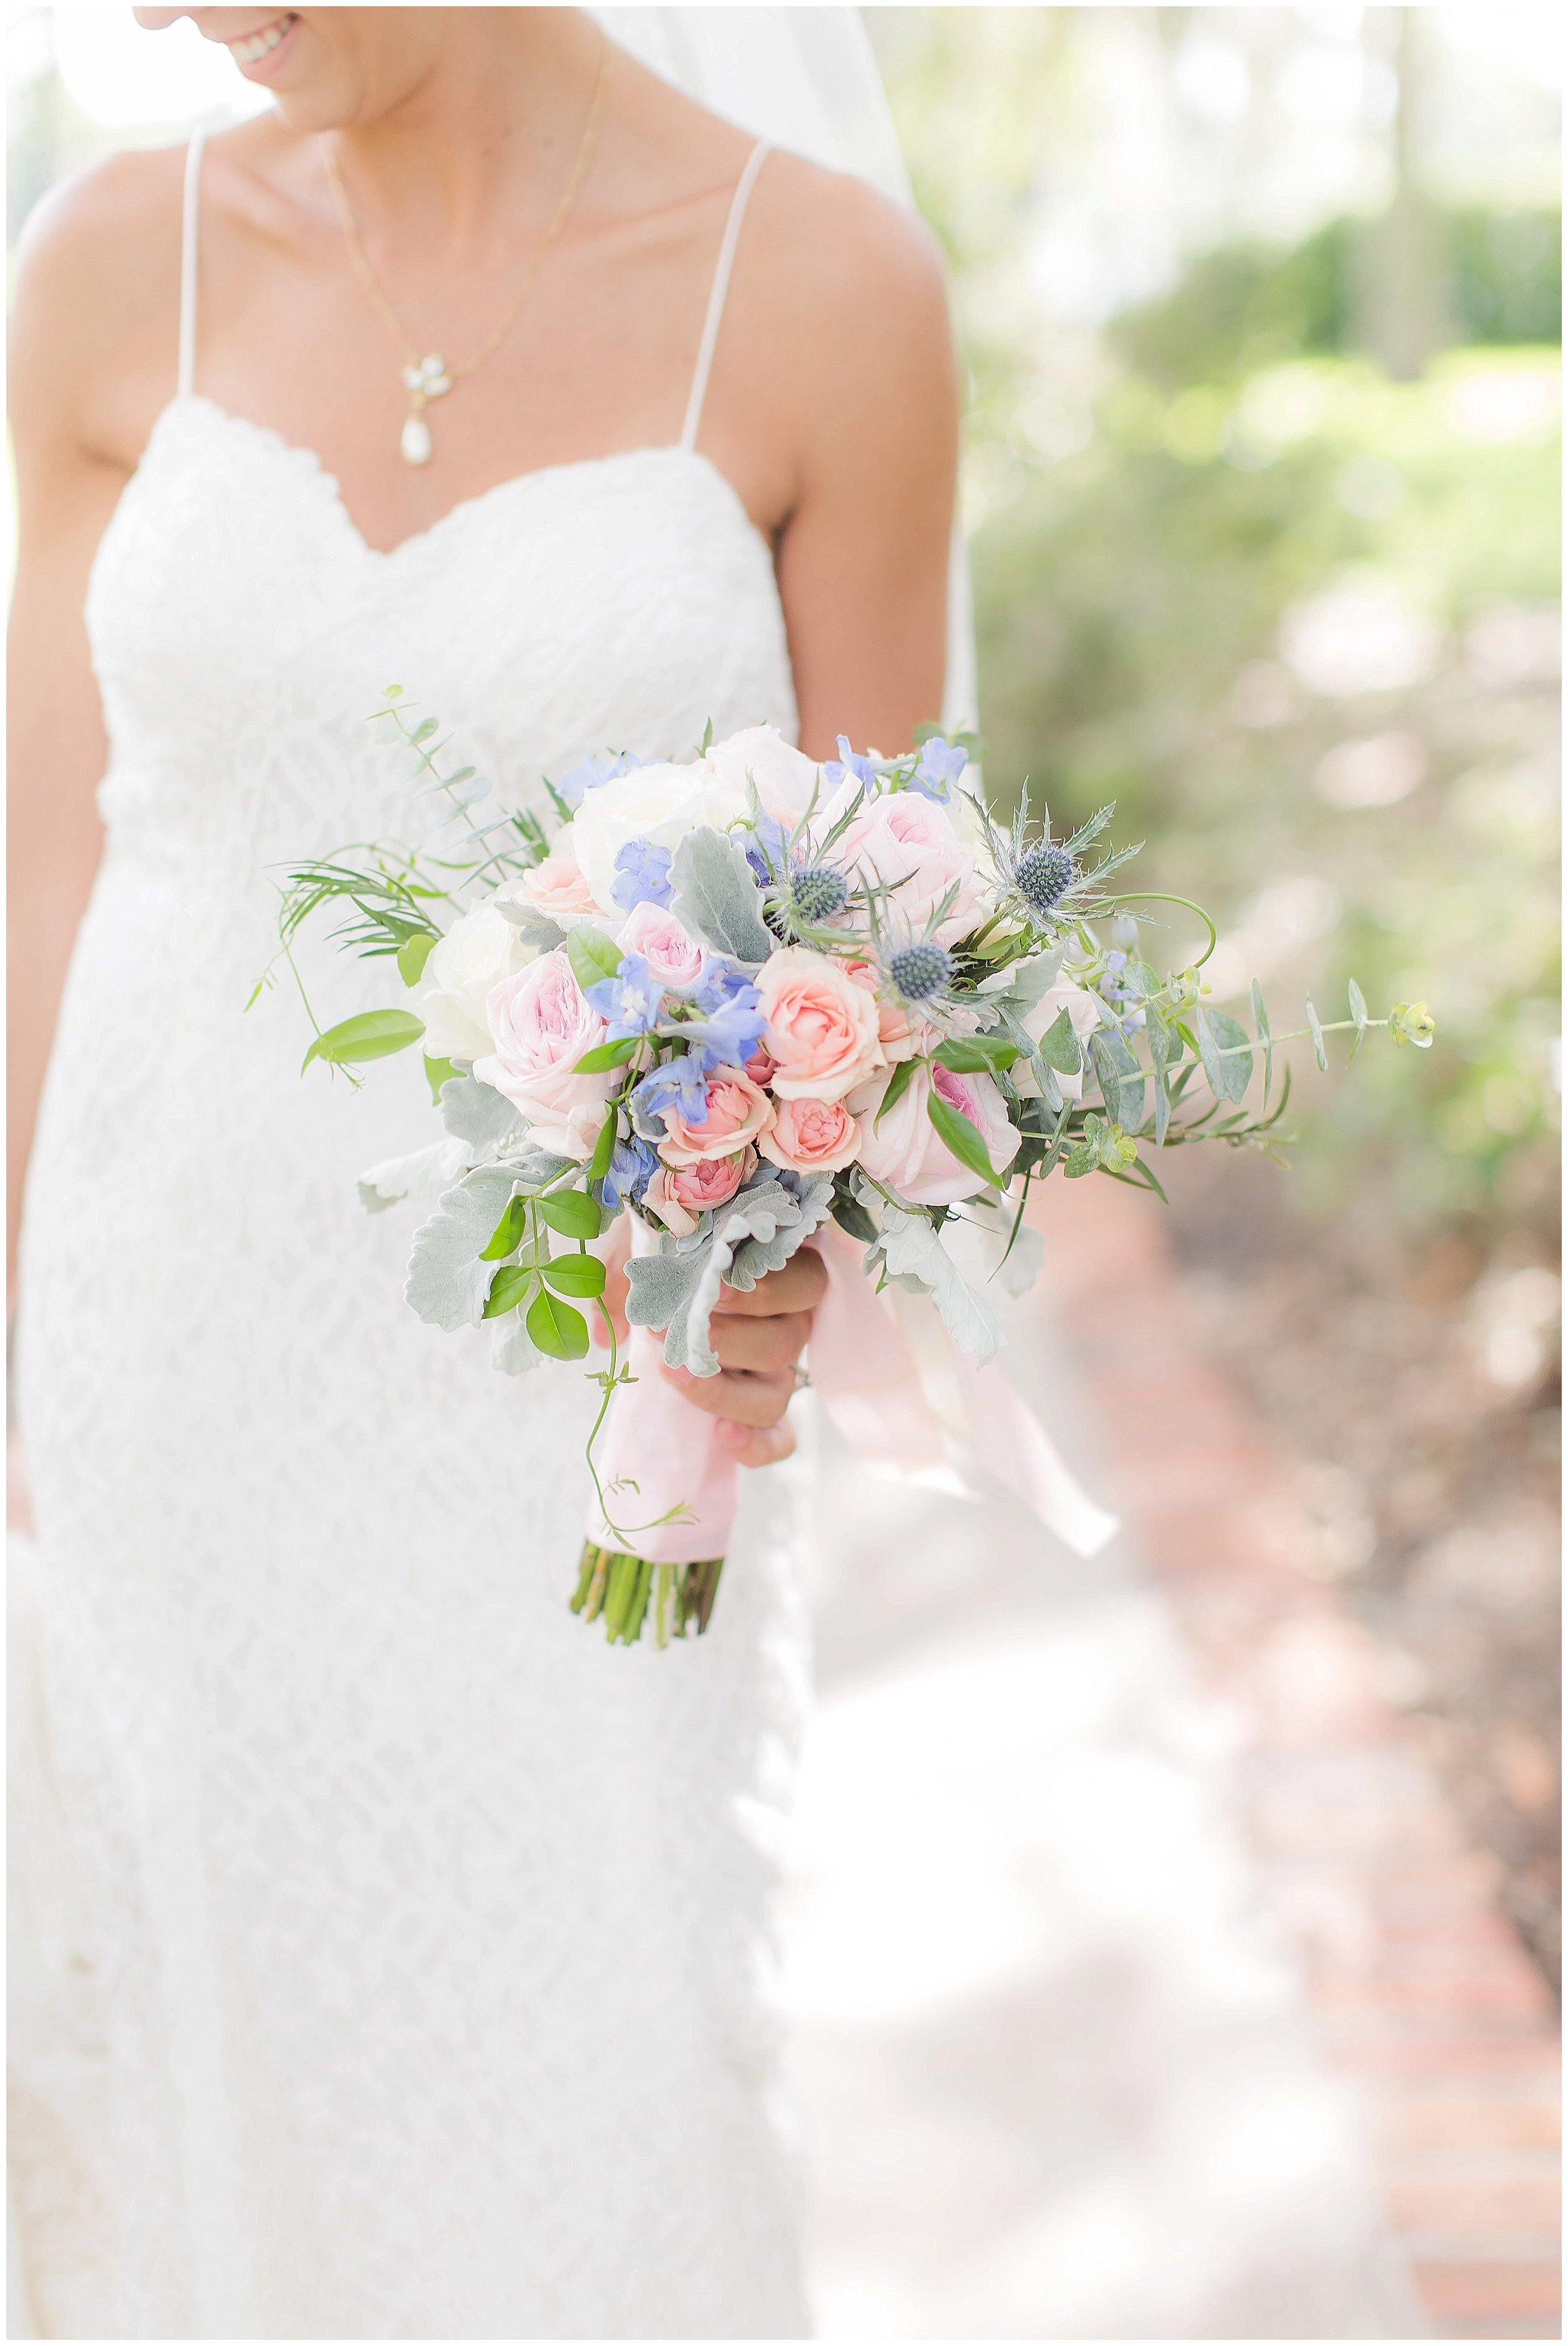 Summer Wedding gown with dusty blue and rose bouquet